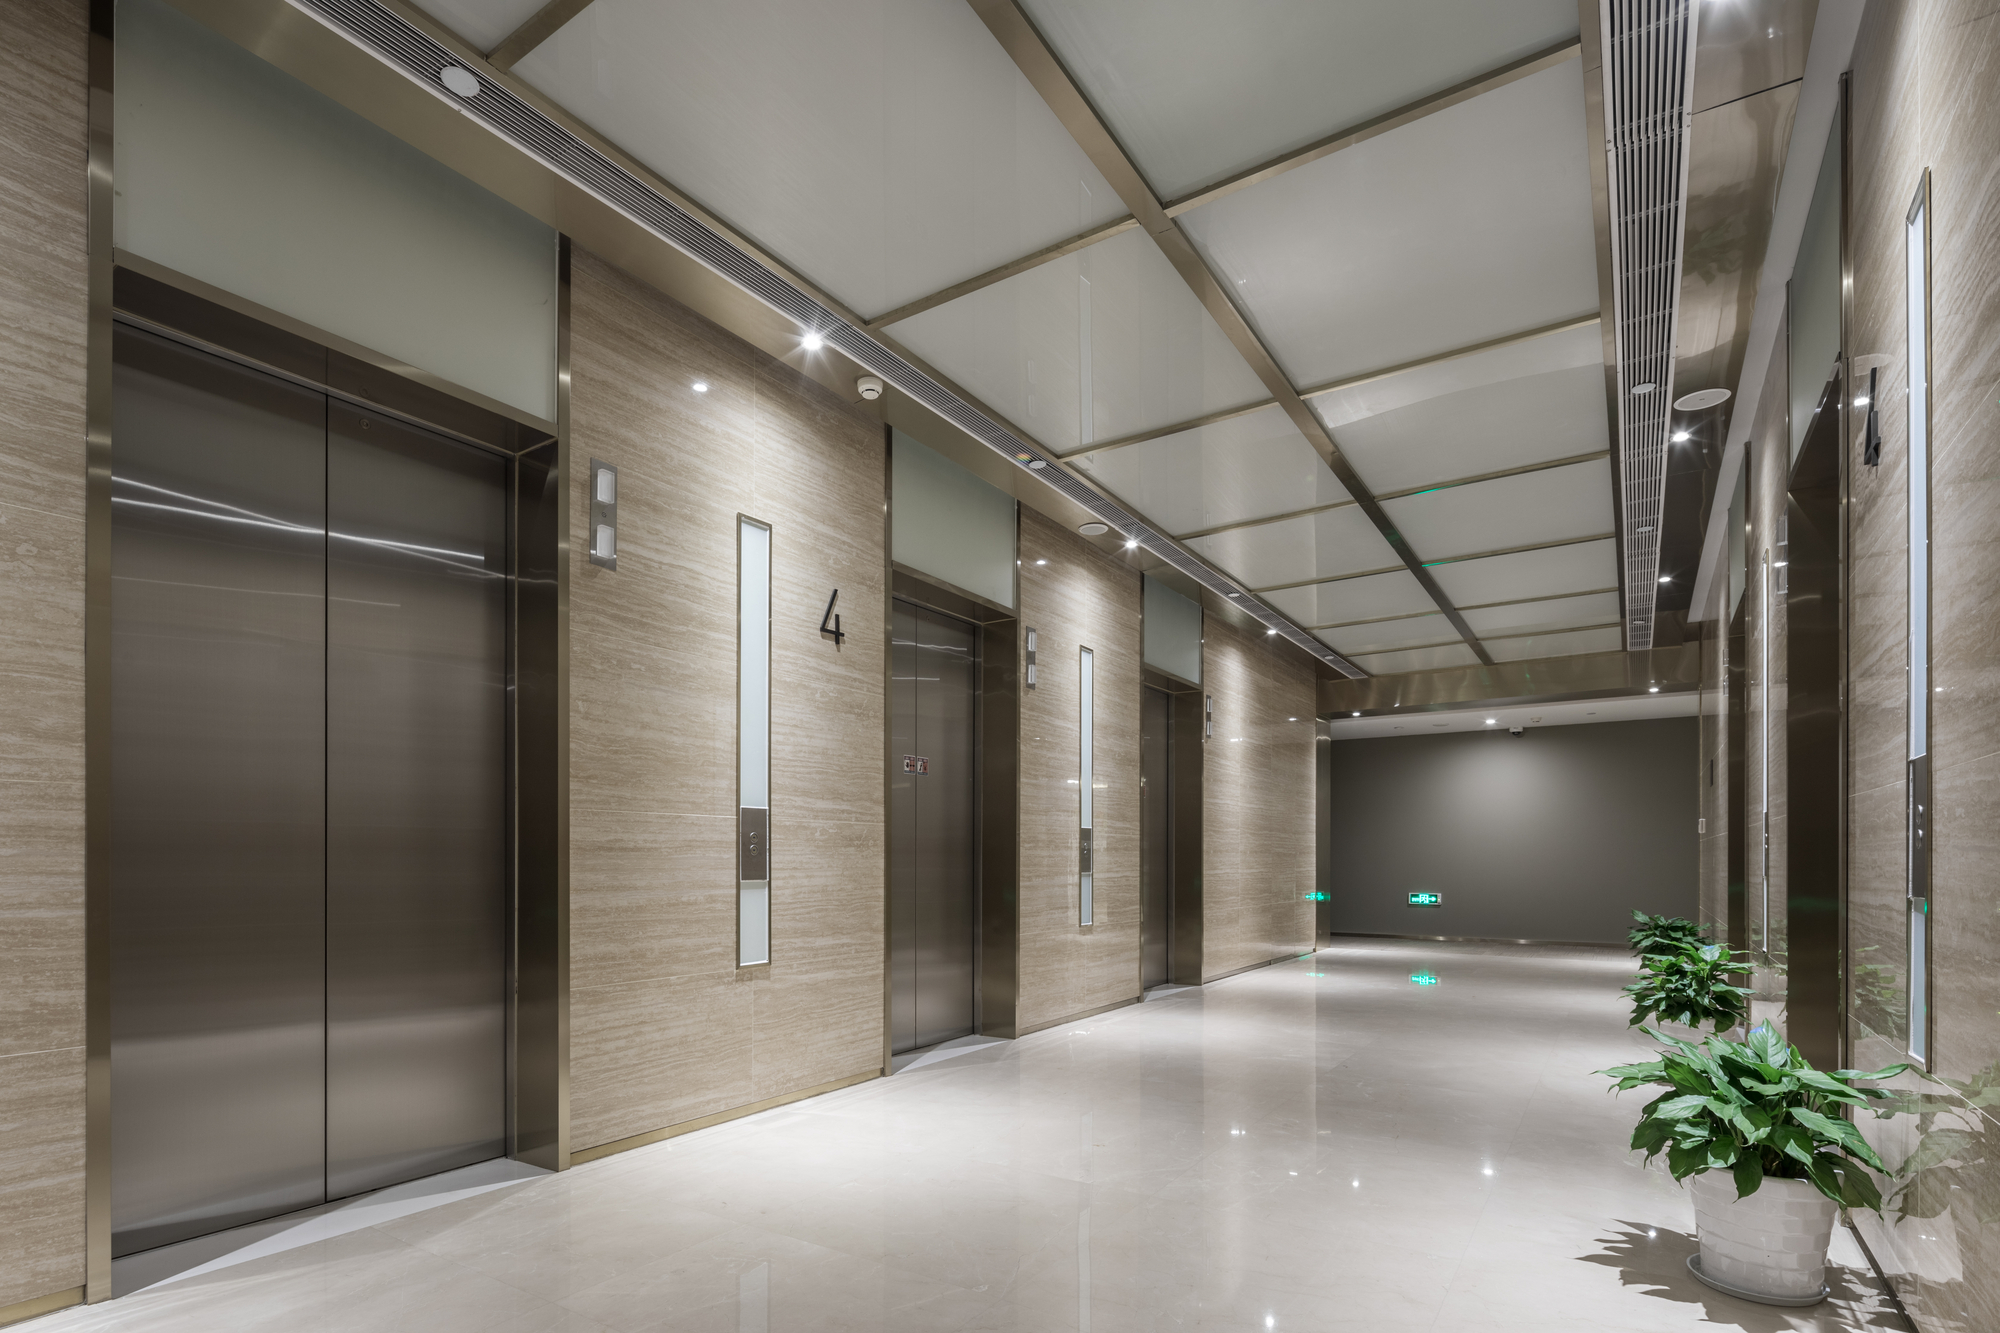 Elevators In Modern Office Lobby Serviced By Independent Elevator Companies